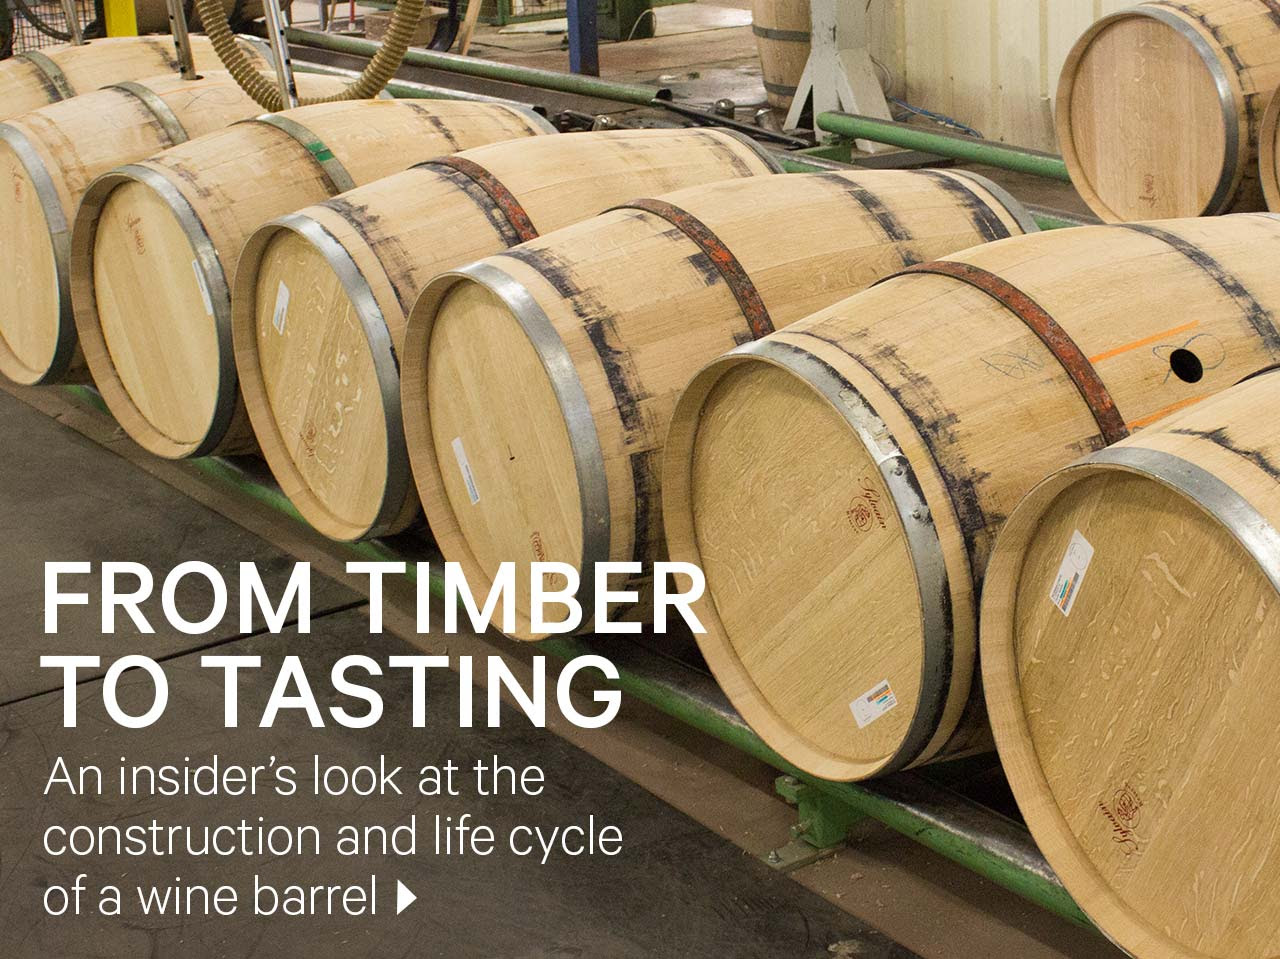 Timber to Tasting